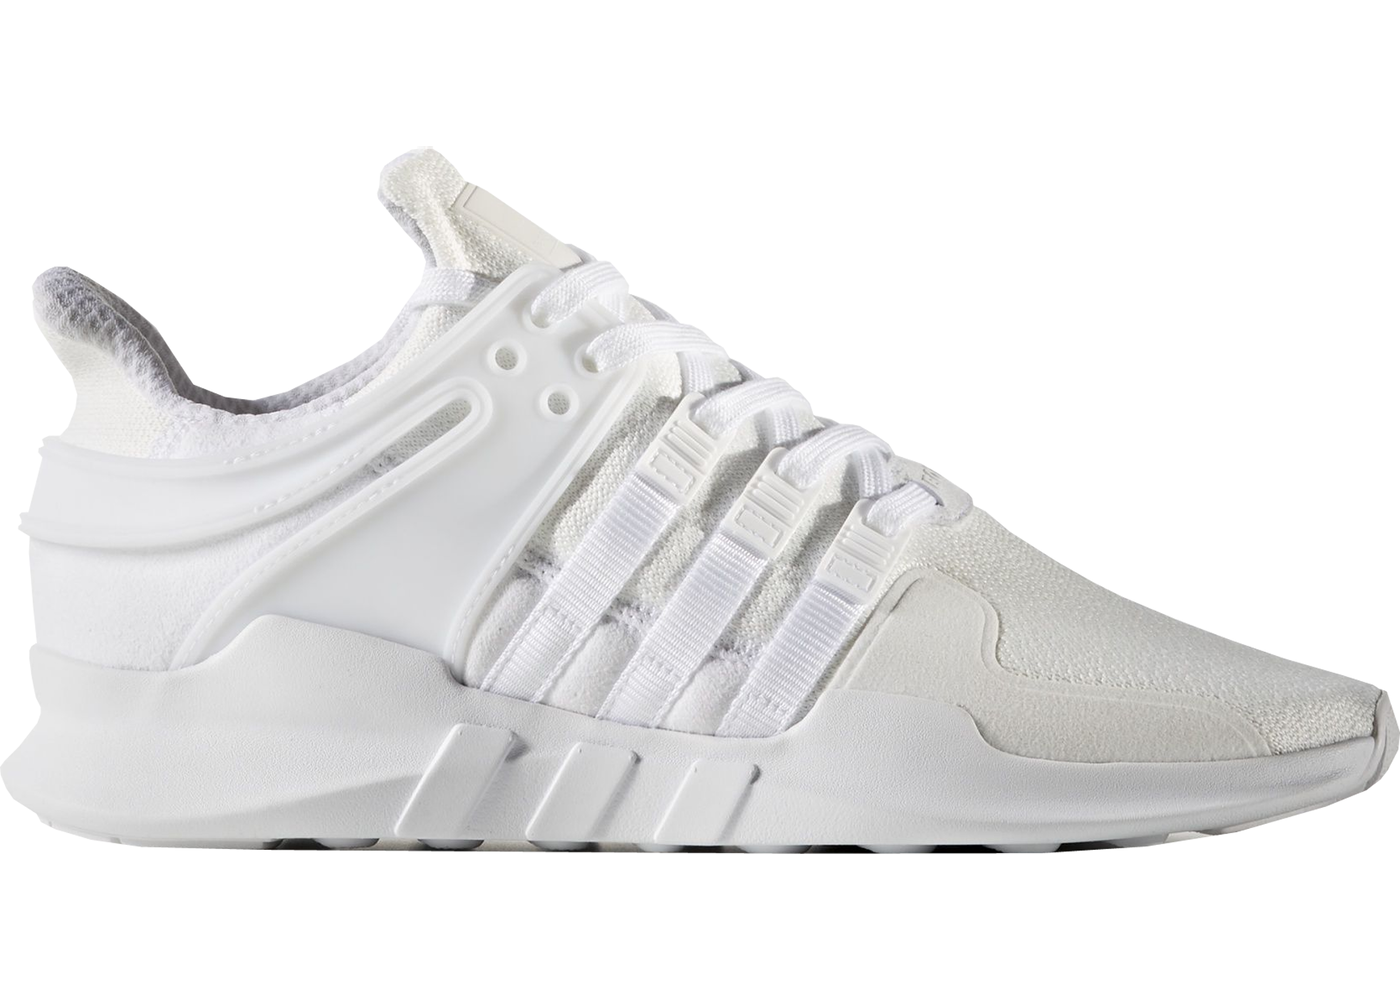 on sale b3eaa 93a20 adidas EQT Support ADV Primeknit White Black